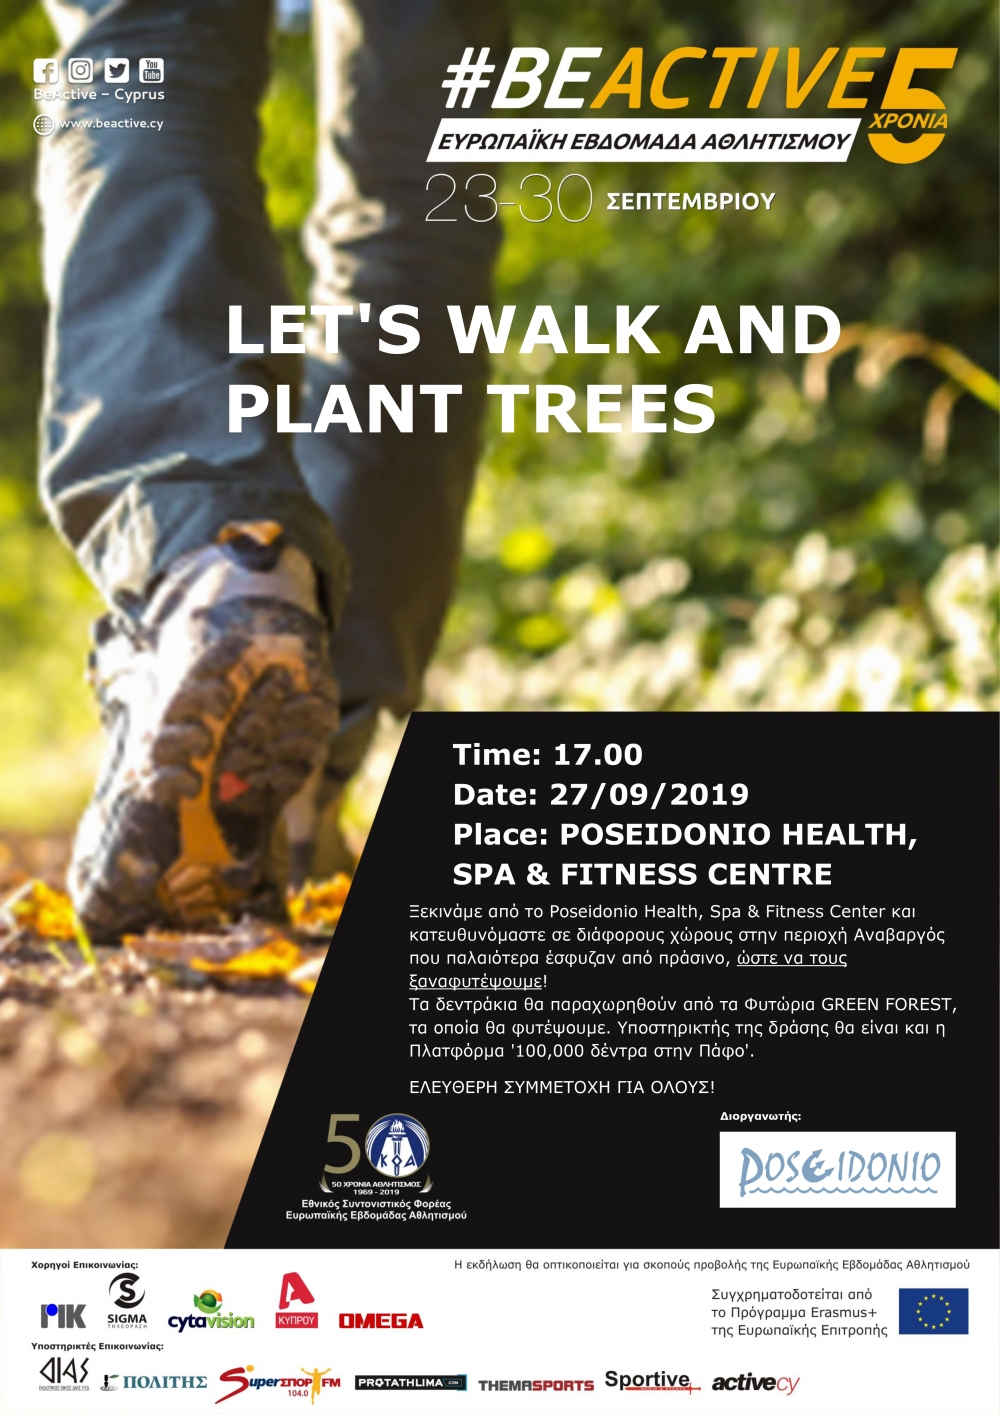 LET'S WALK AND PLANT TREES!